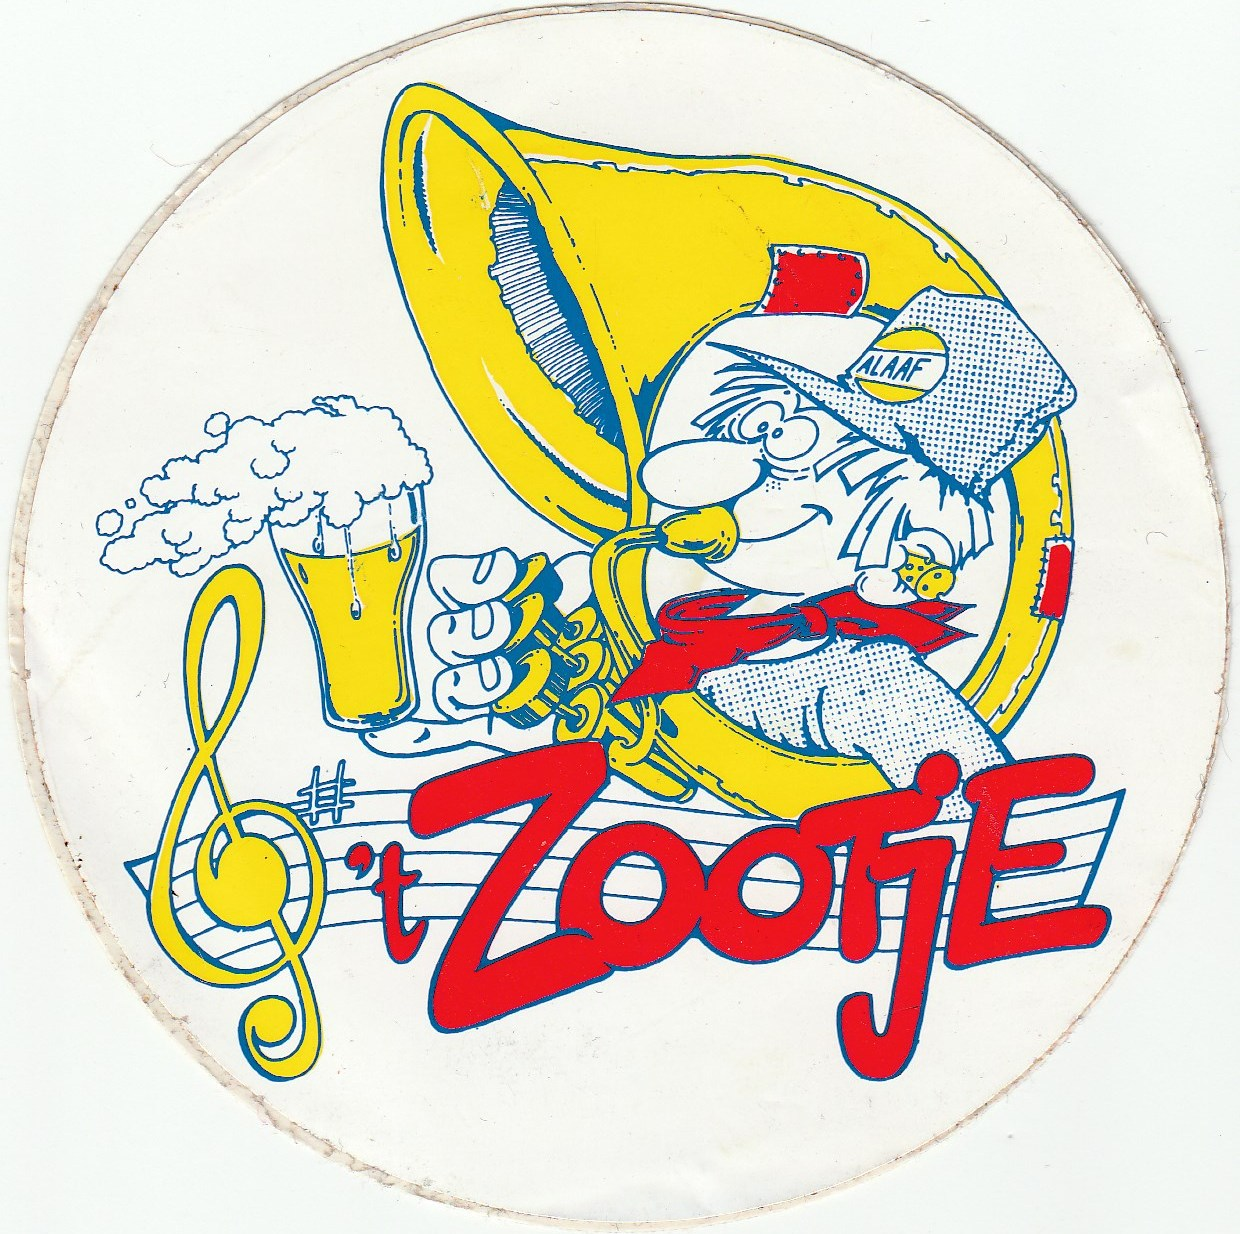 t Zootje sticker 01